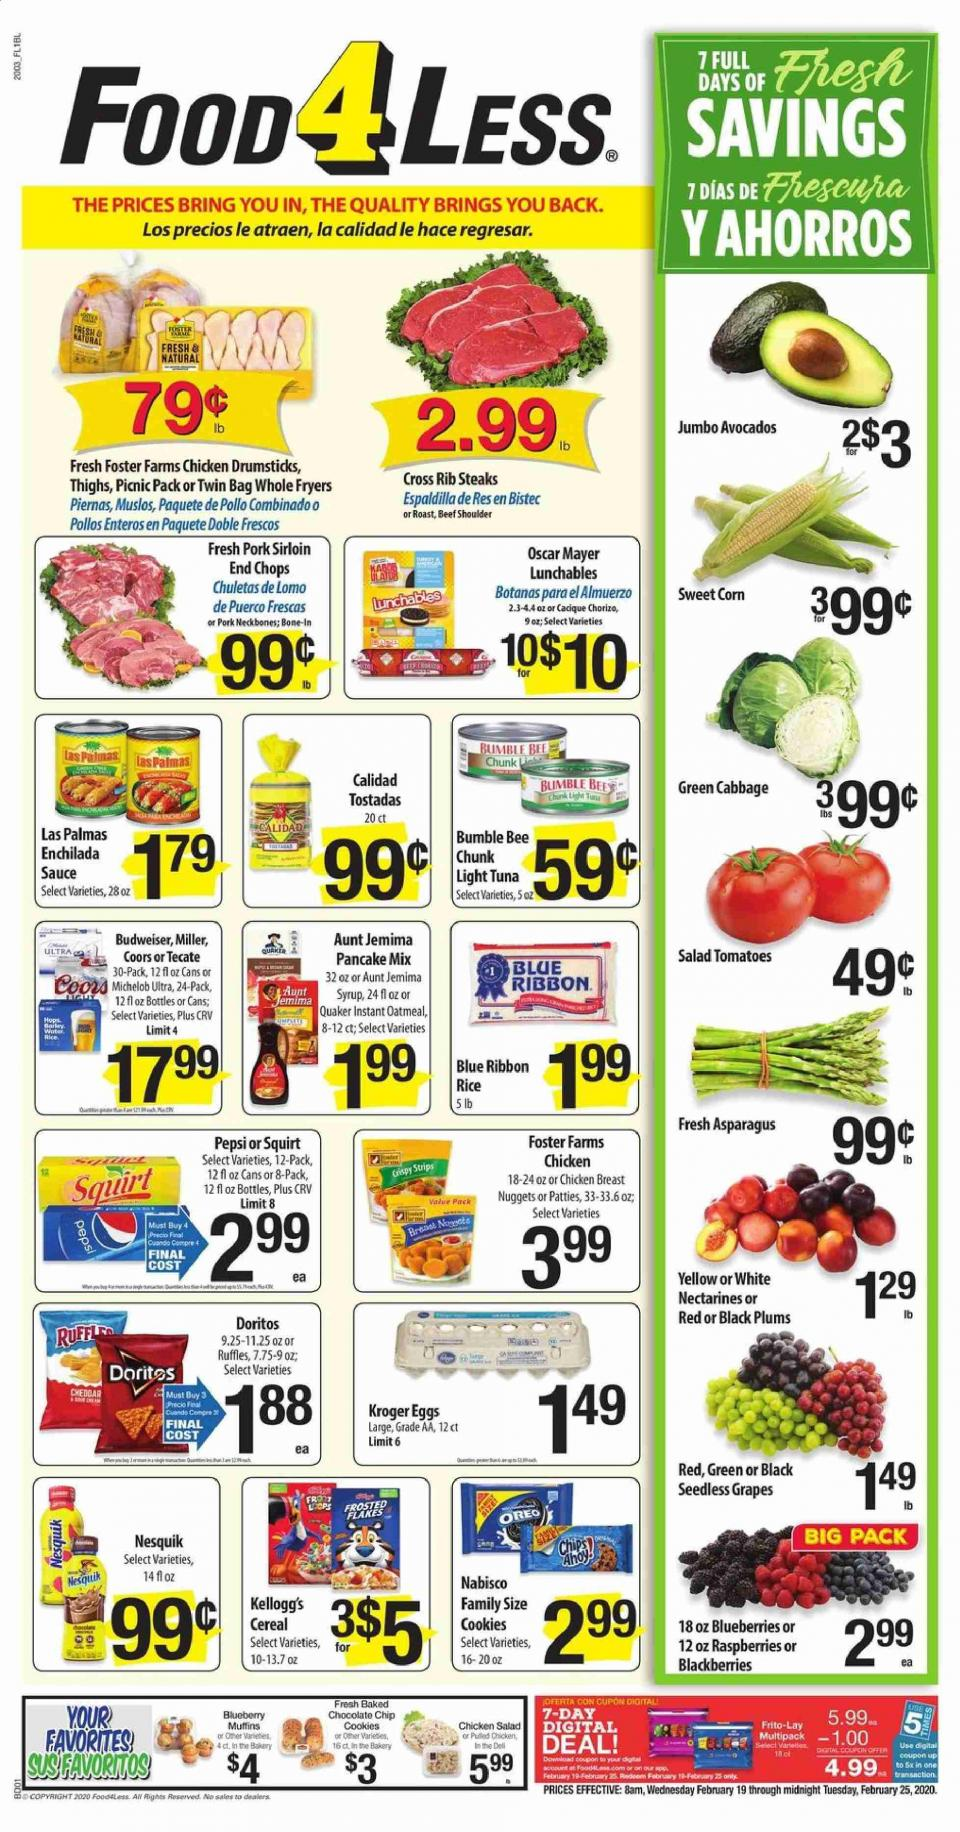 food 4 less final february ad valid from 19 25 2020